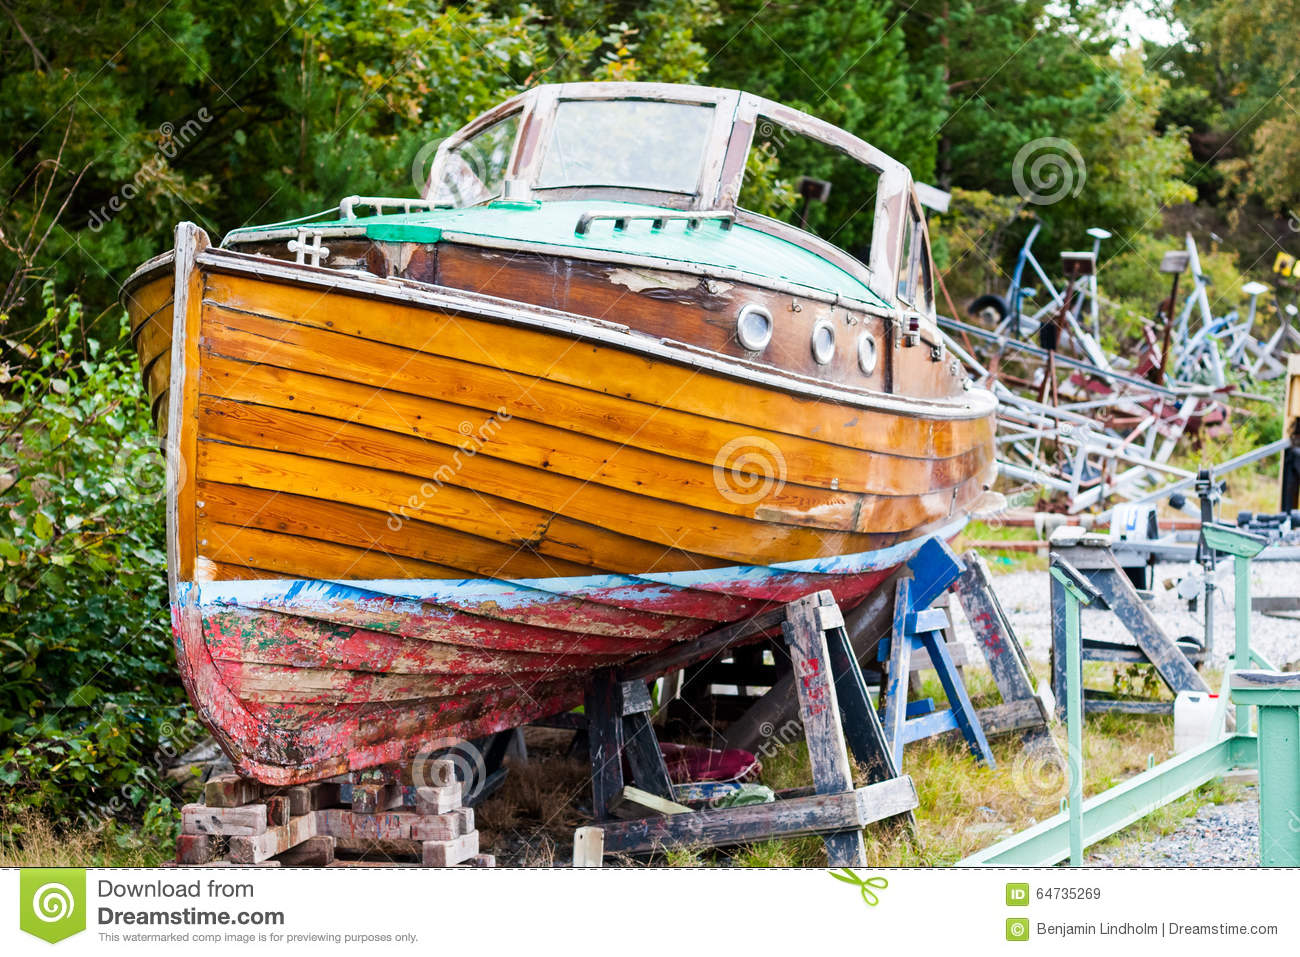 Beautiful Old Wooden Boat In Dry Dock Stock Image - Image ...